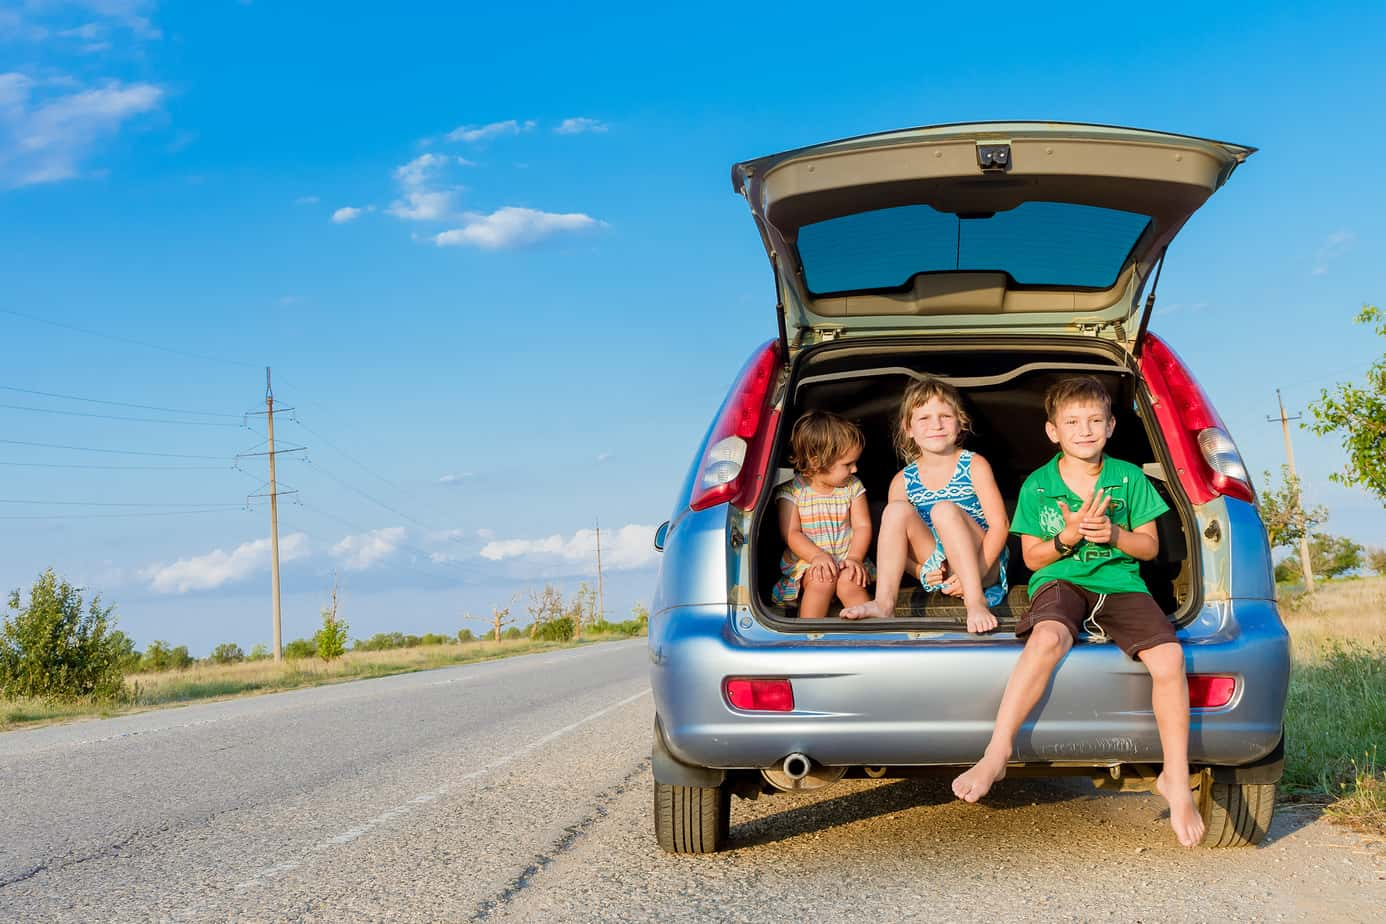 Oh The Places You'll Go – Travel Safety This Summer